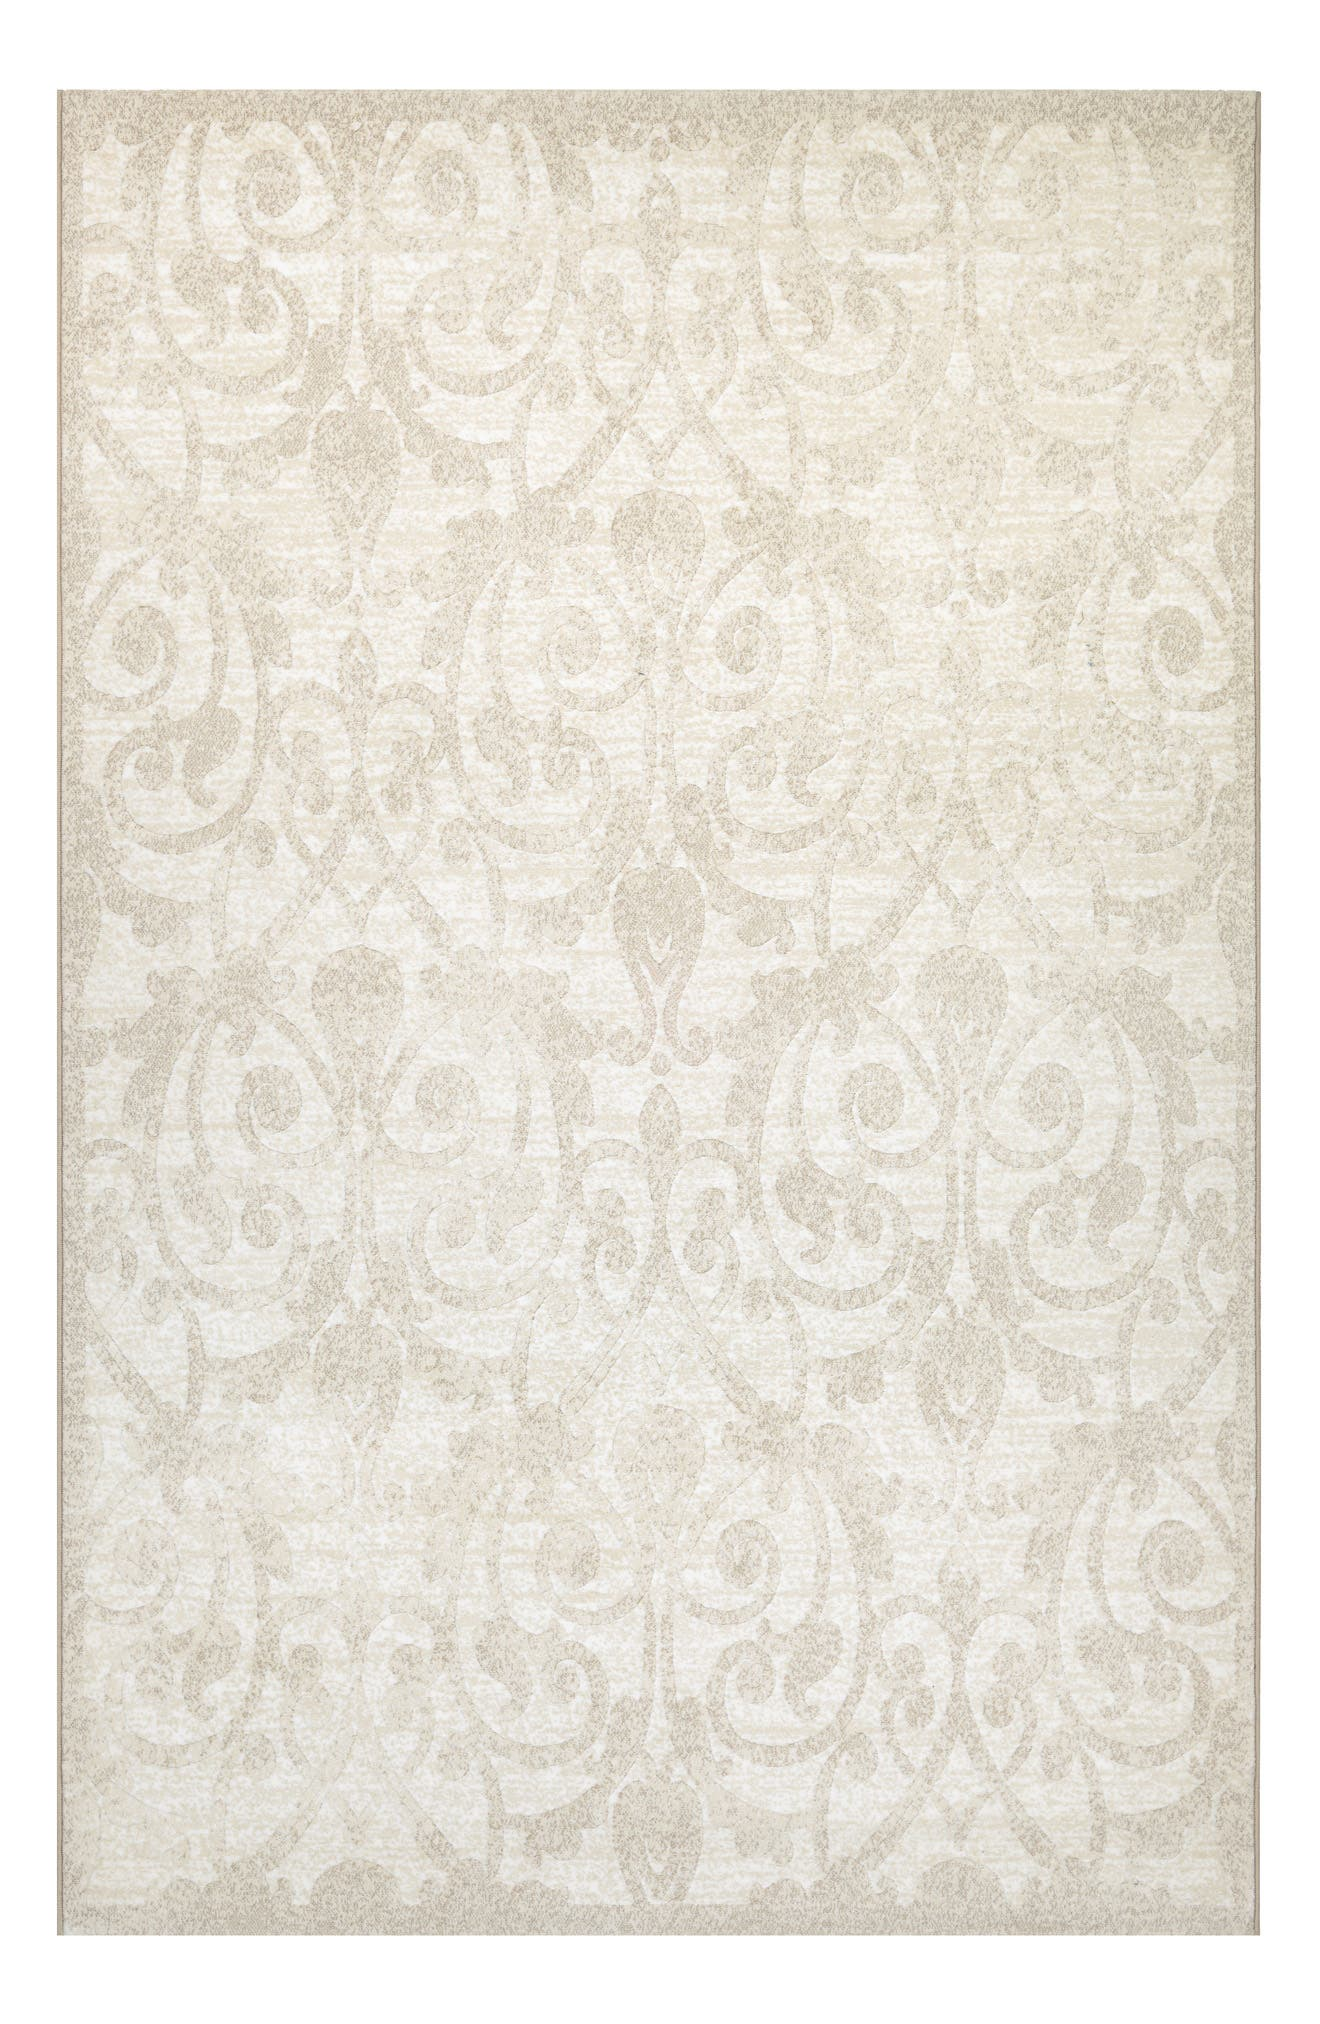 Marina Cannes Area Rug,                         Main,                         color, 250